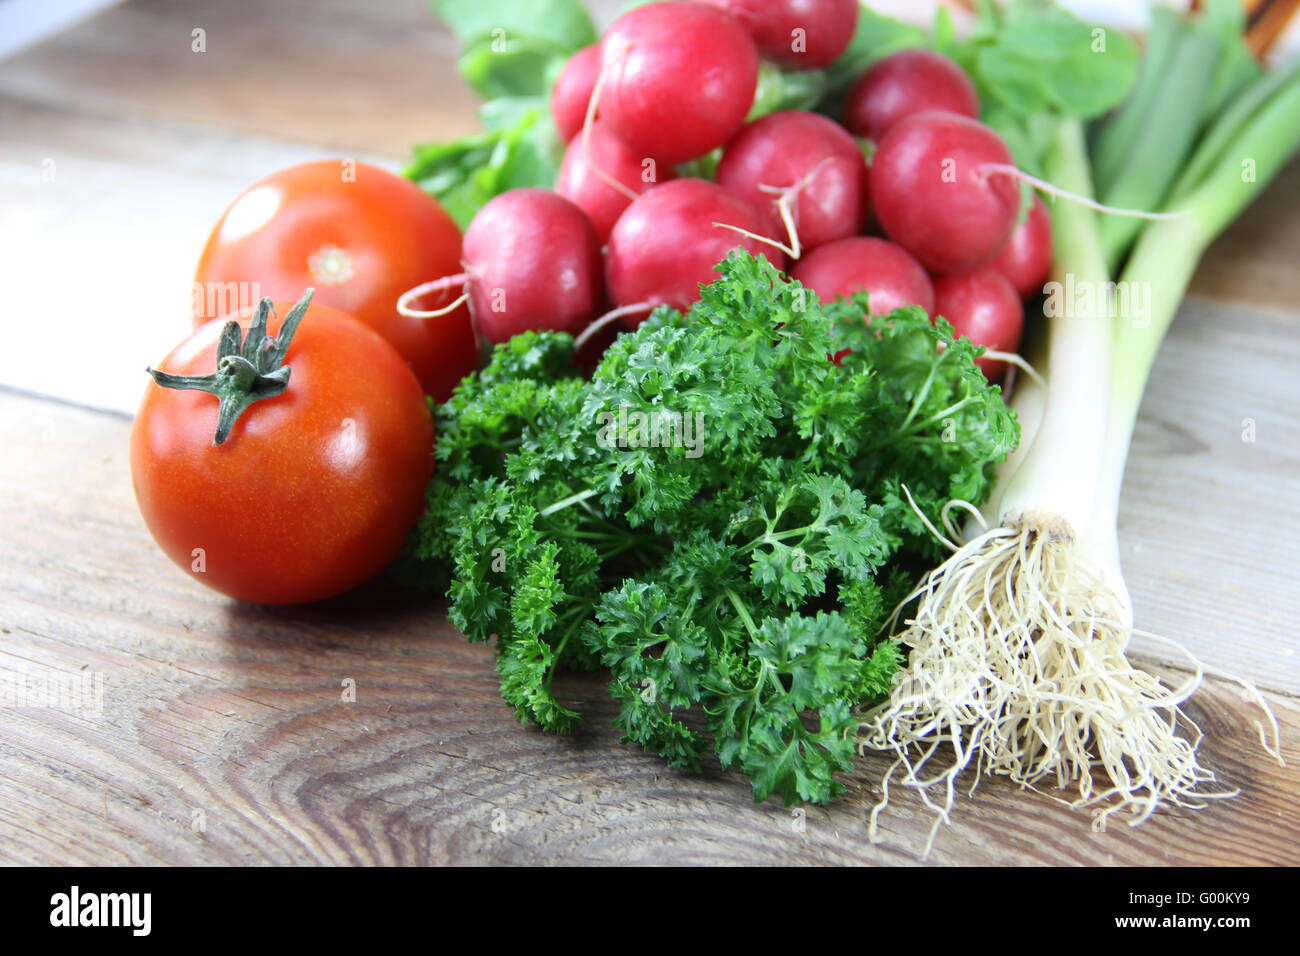 Tomatoes, parsley, leeks and more - Stock Image